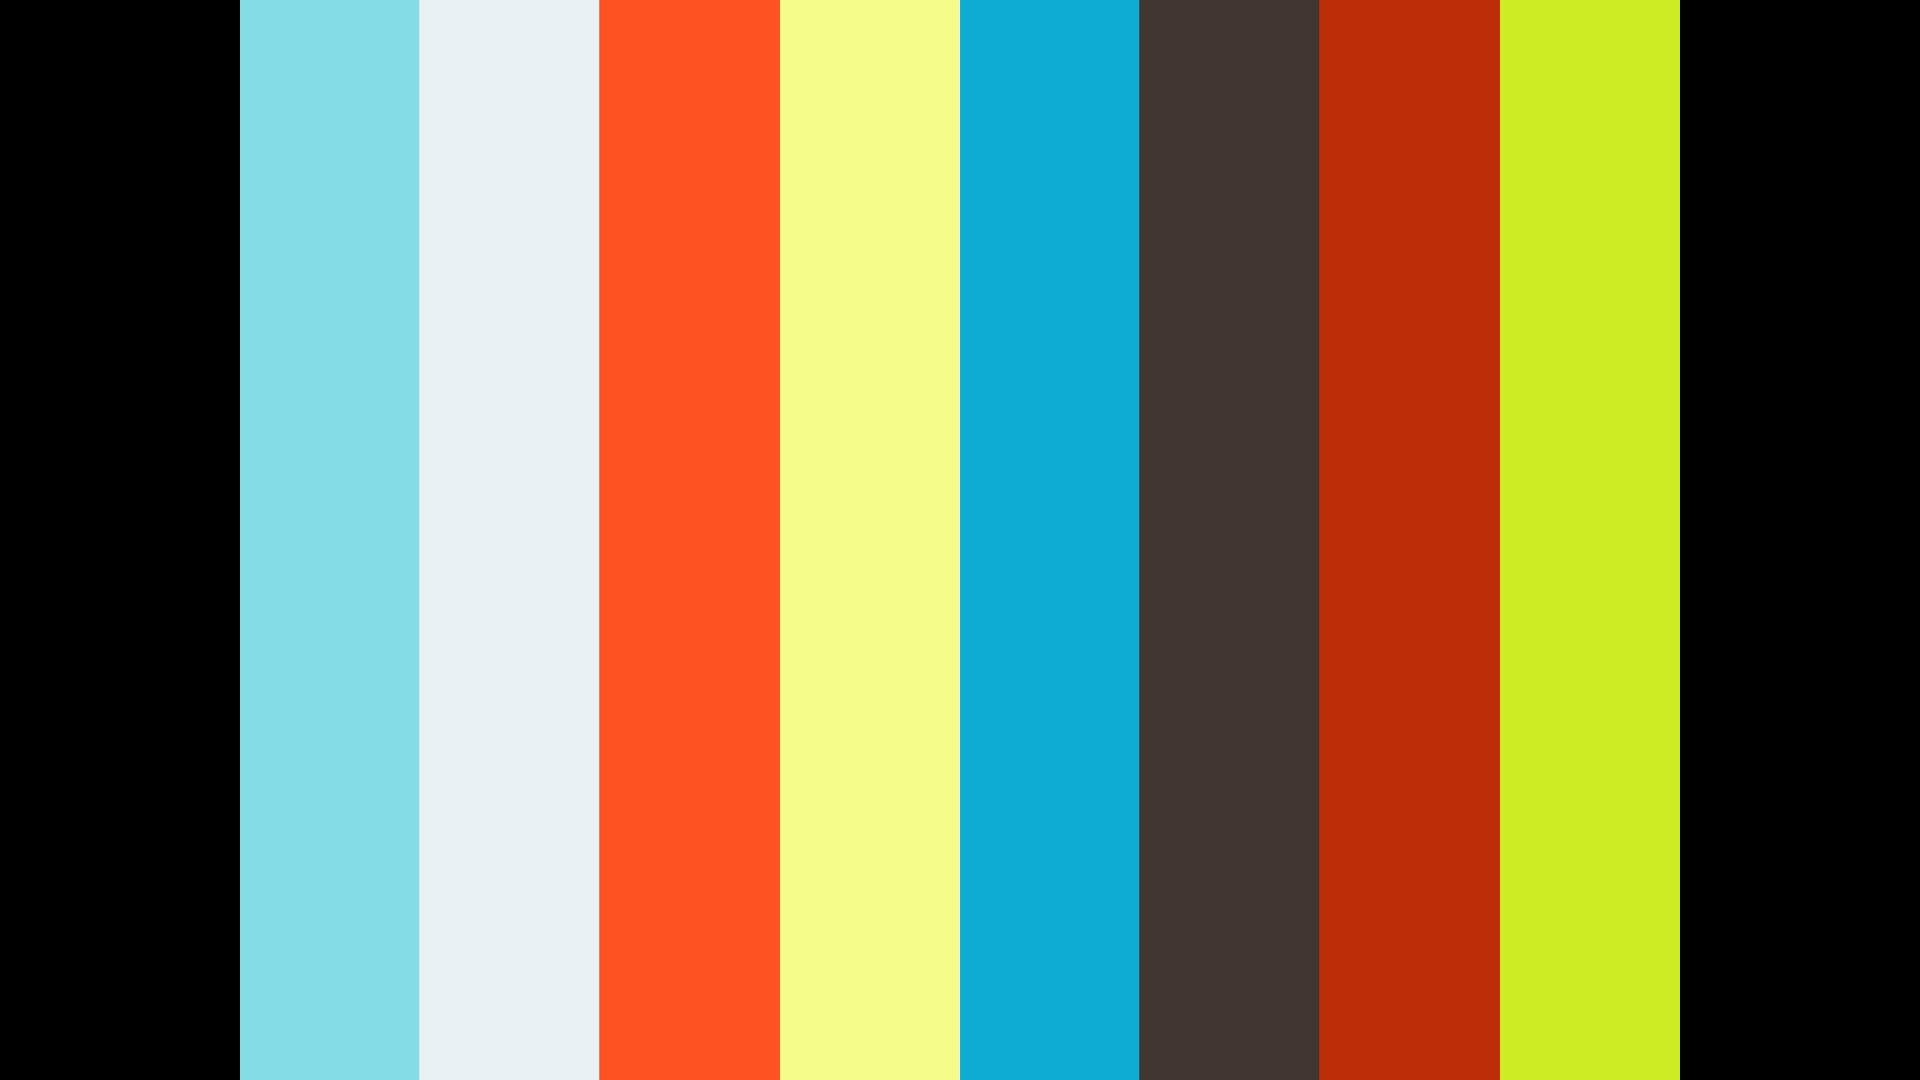 Introduction by Julie Gaillard and Francesco Giusti